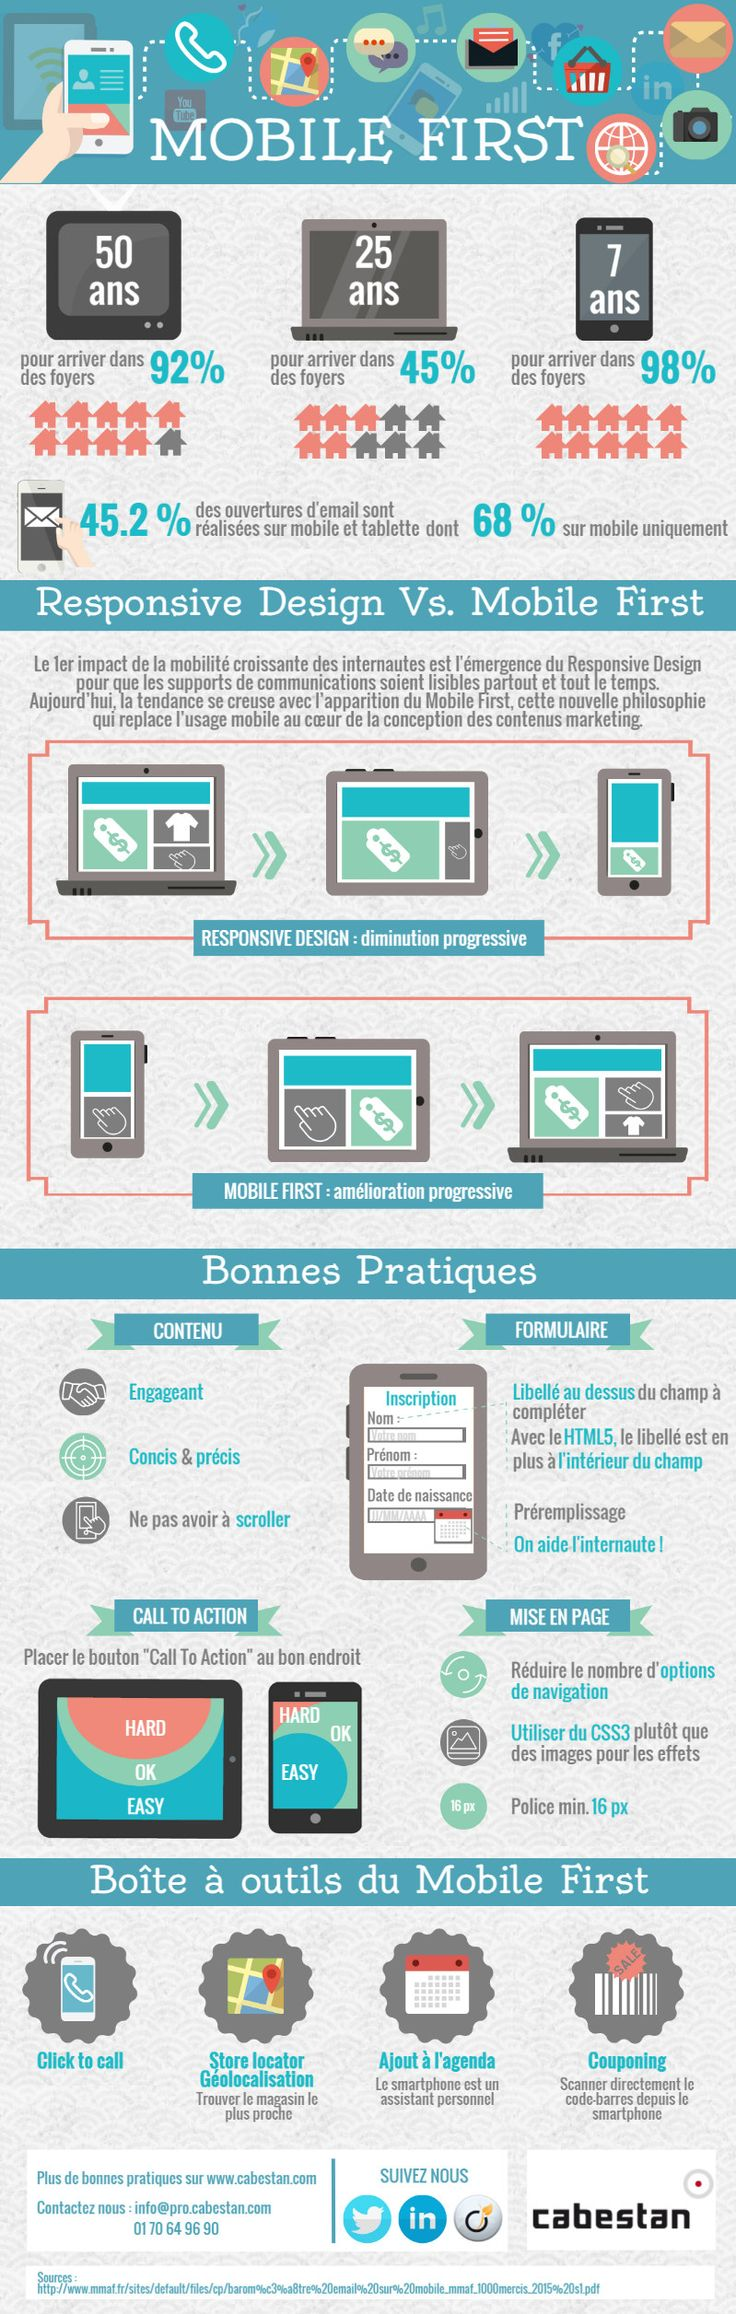 Email : pourquoi passer au mobile first ? | Comarketing-News